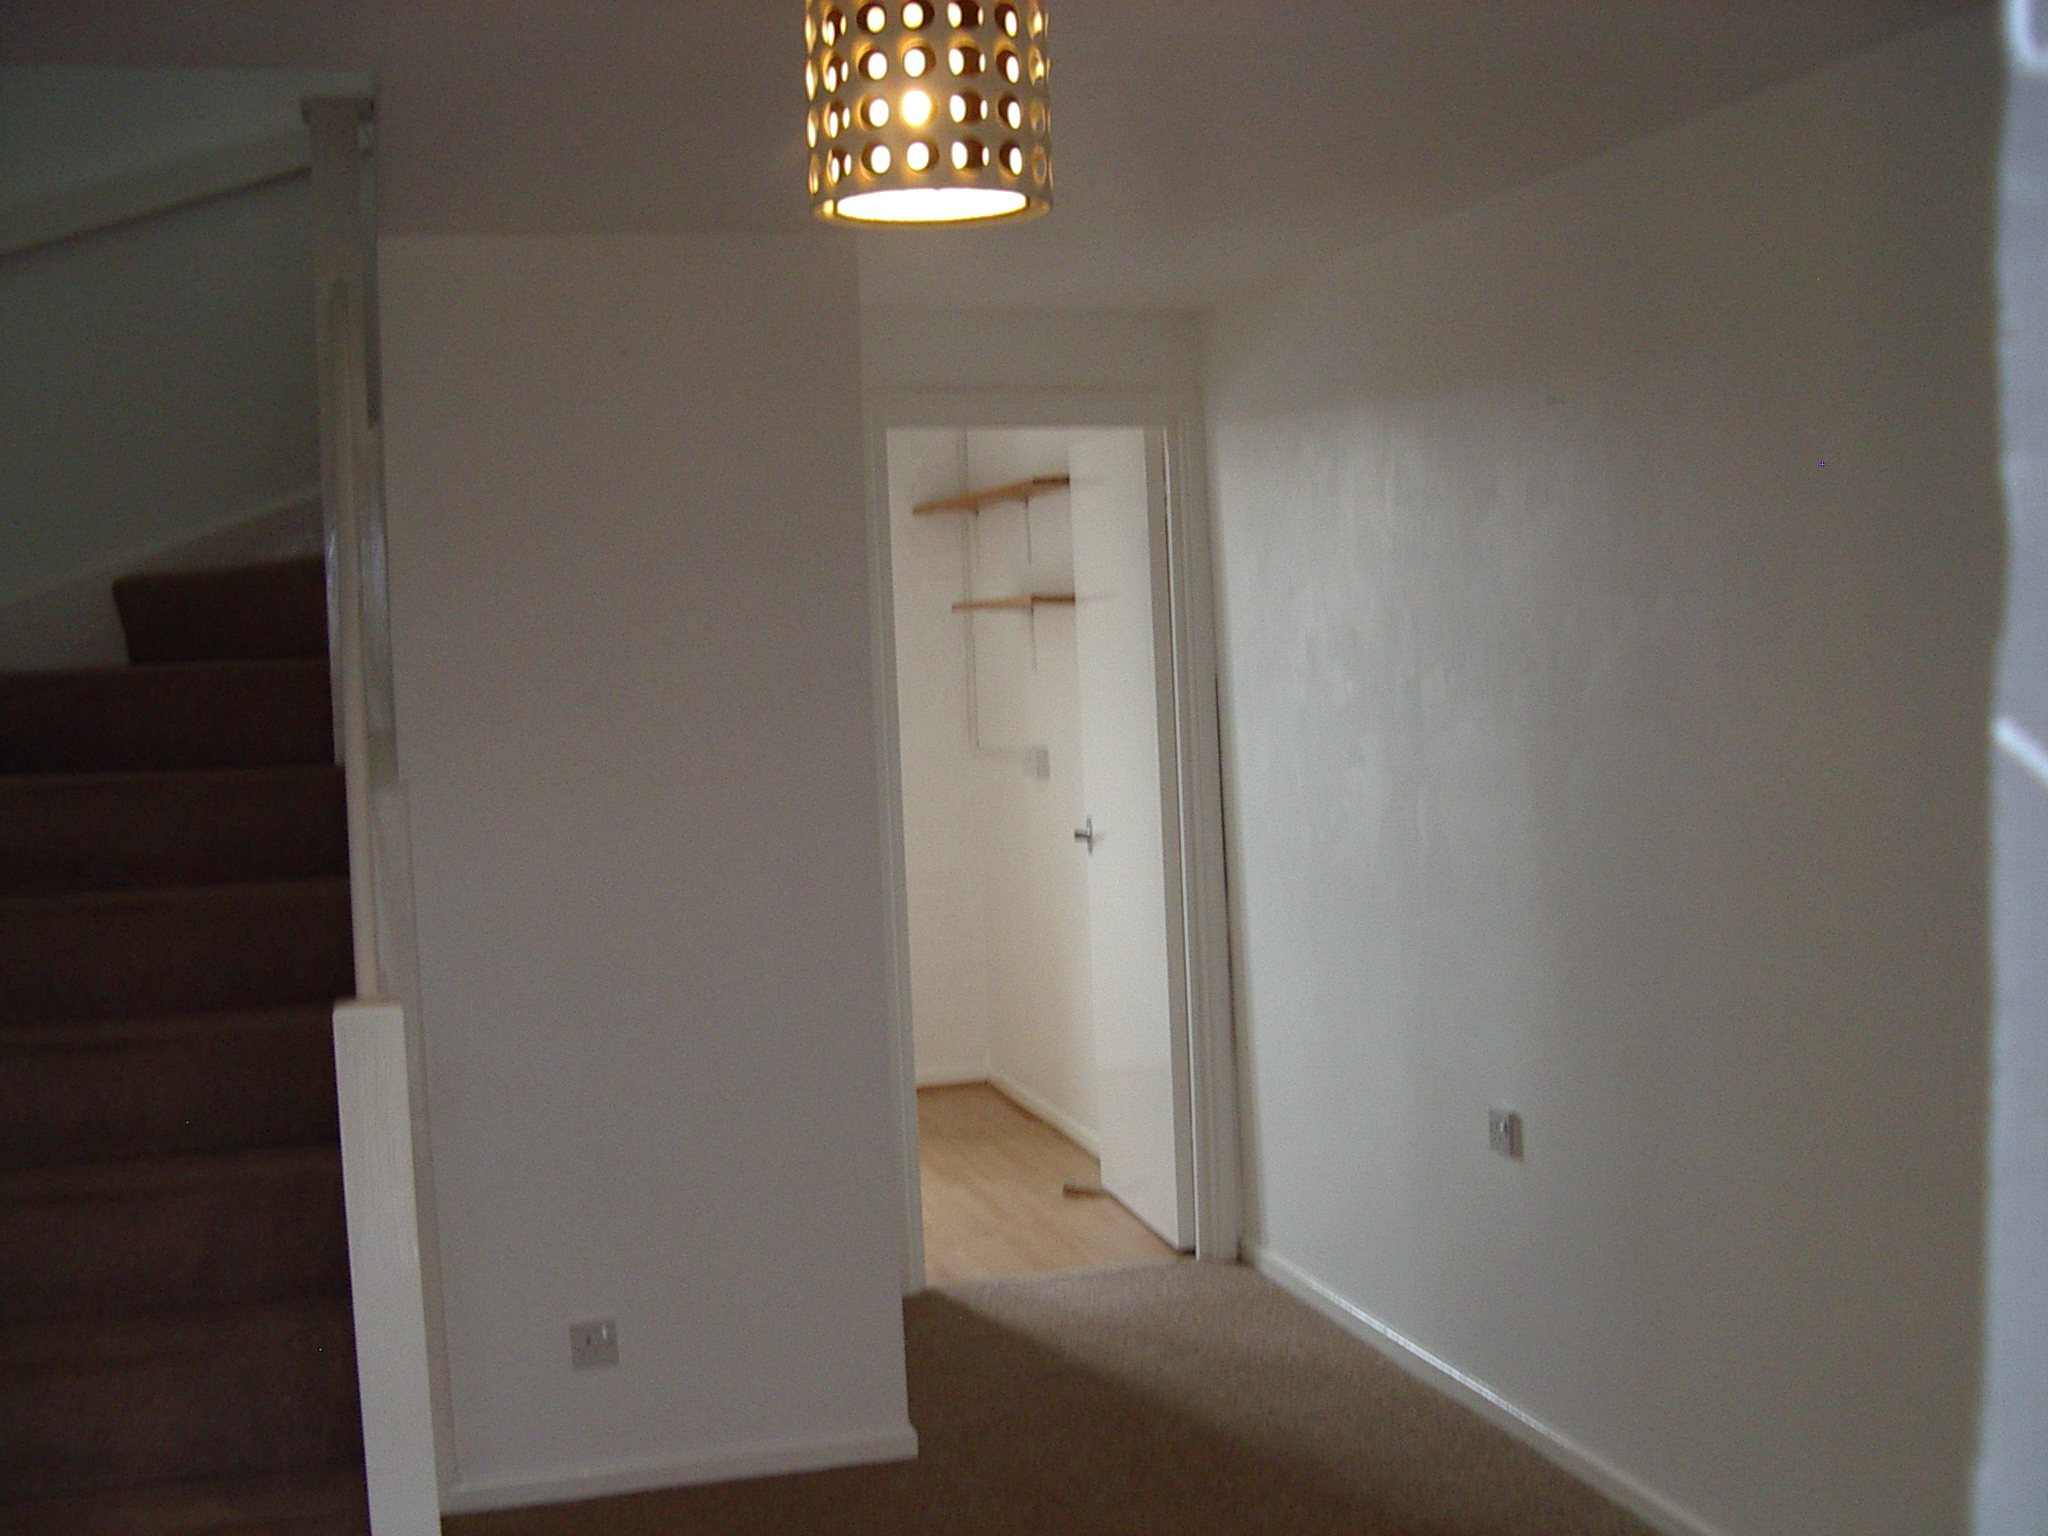 1 Bedroom Flat To Rent From Private Landlord 28 Images 1 Bed Flat To Rent School Wynd